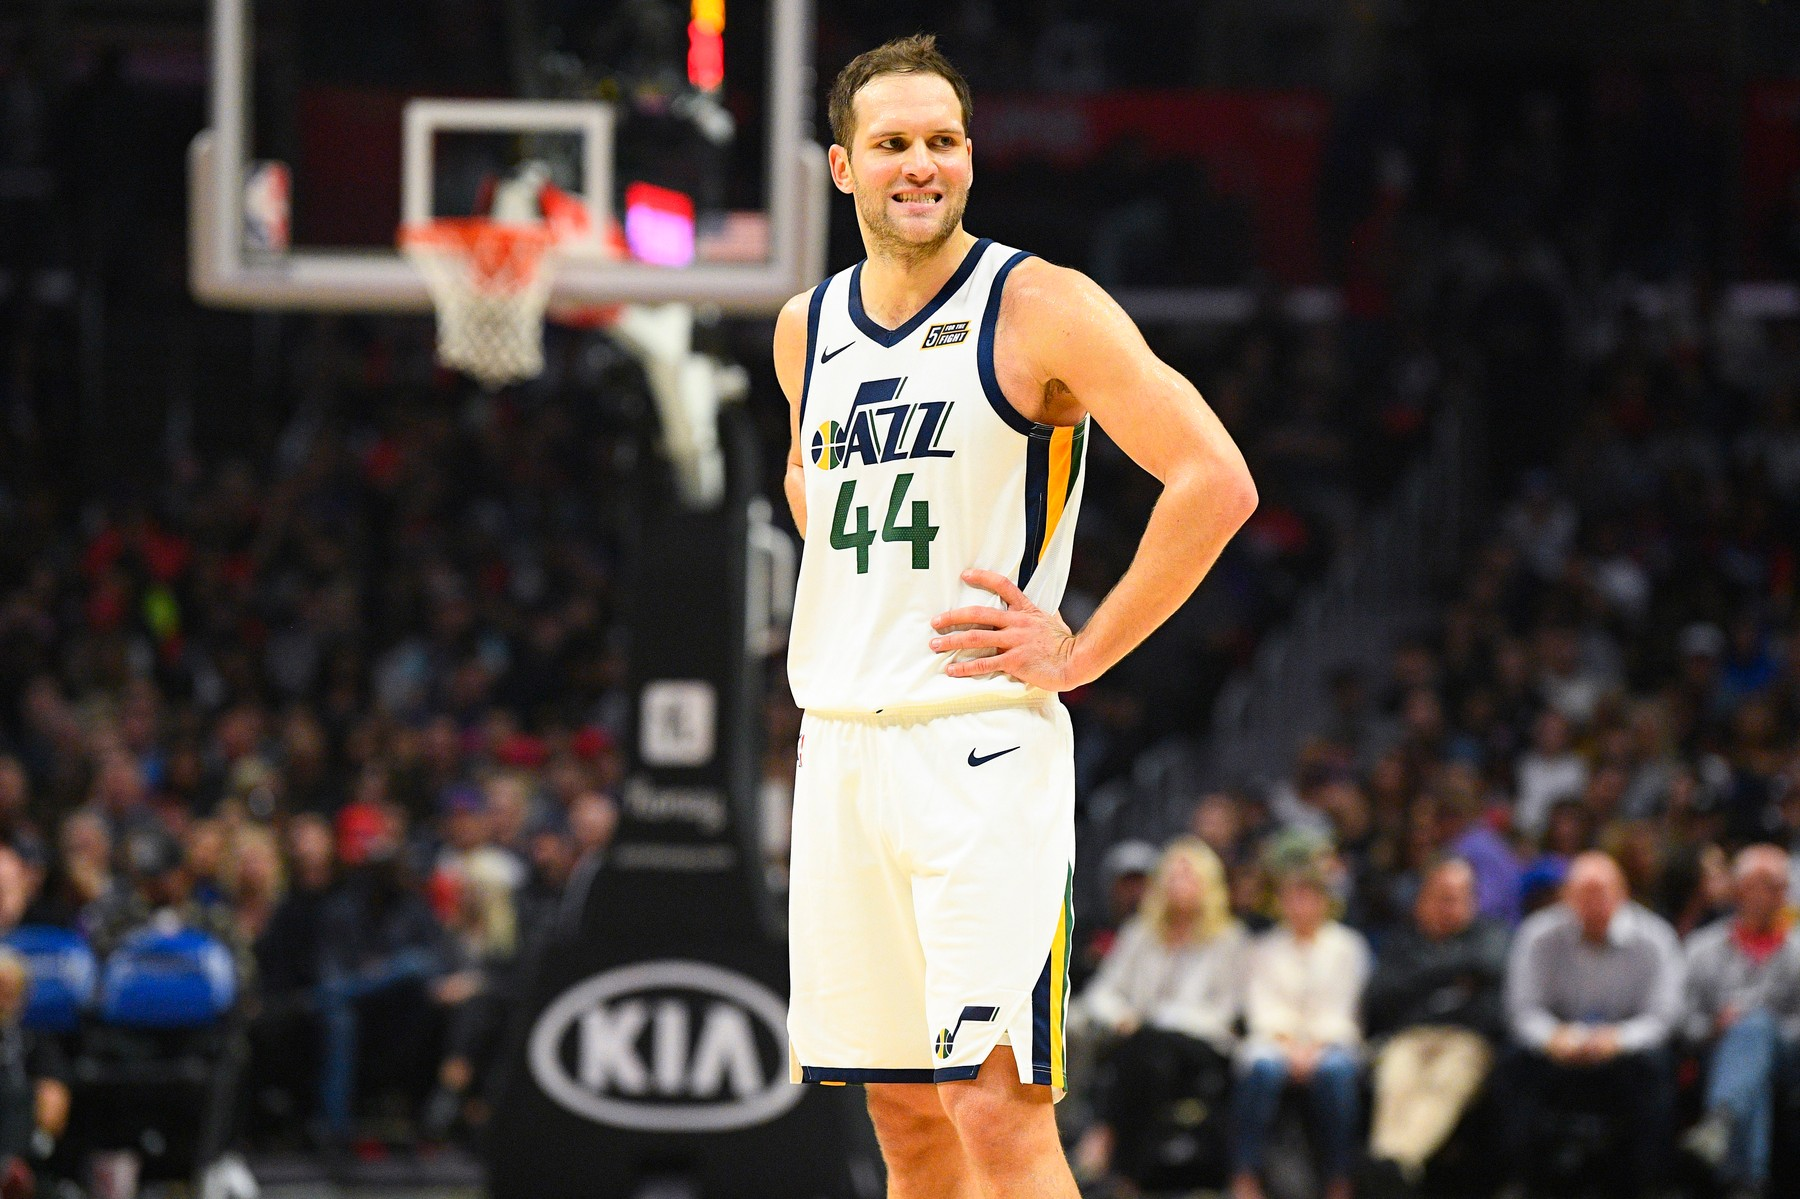 LOS ANGELES, CA - NOVEMBER 03: Utah Jazz Forward Bojan Bogdanovic (44) looks on during a NBA game between the Utah Jazz and the Los Angeles Clippers on November 3, 2019 at STAPLES Center in Los Angeles, CA., Image: 480942278, License: Rights-managed, Restrictions: FOR EDITORIAL USE ONLY. Icon Sportswire (A Division of XML Team Solutions) reserves the right to pursue unauthorized users of this image. If you violate our intellectual property you may be liable for: actual damages, loss of income, and profits you derive from the use of this image, and, where appropriate, the costs of collection and/or statutory damages up to 0,000 (USD)., Model Release: no, Credit line: Brian Rothmuller/Icon Sportswire / Newscom / Profimedia